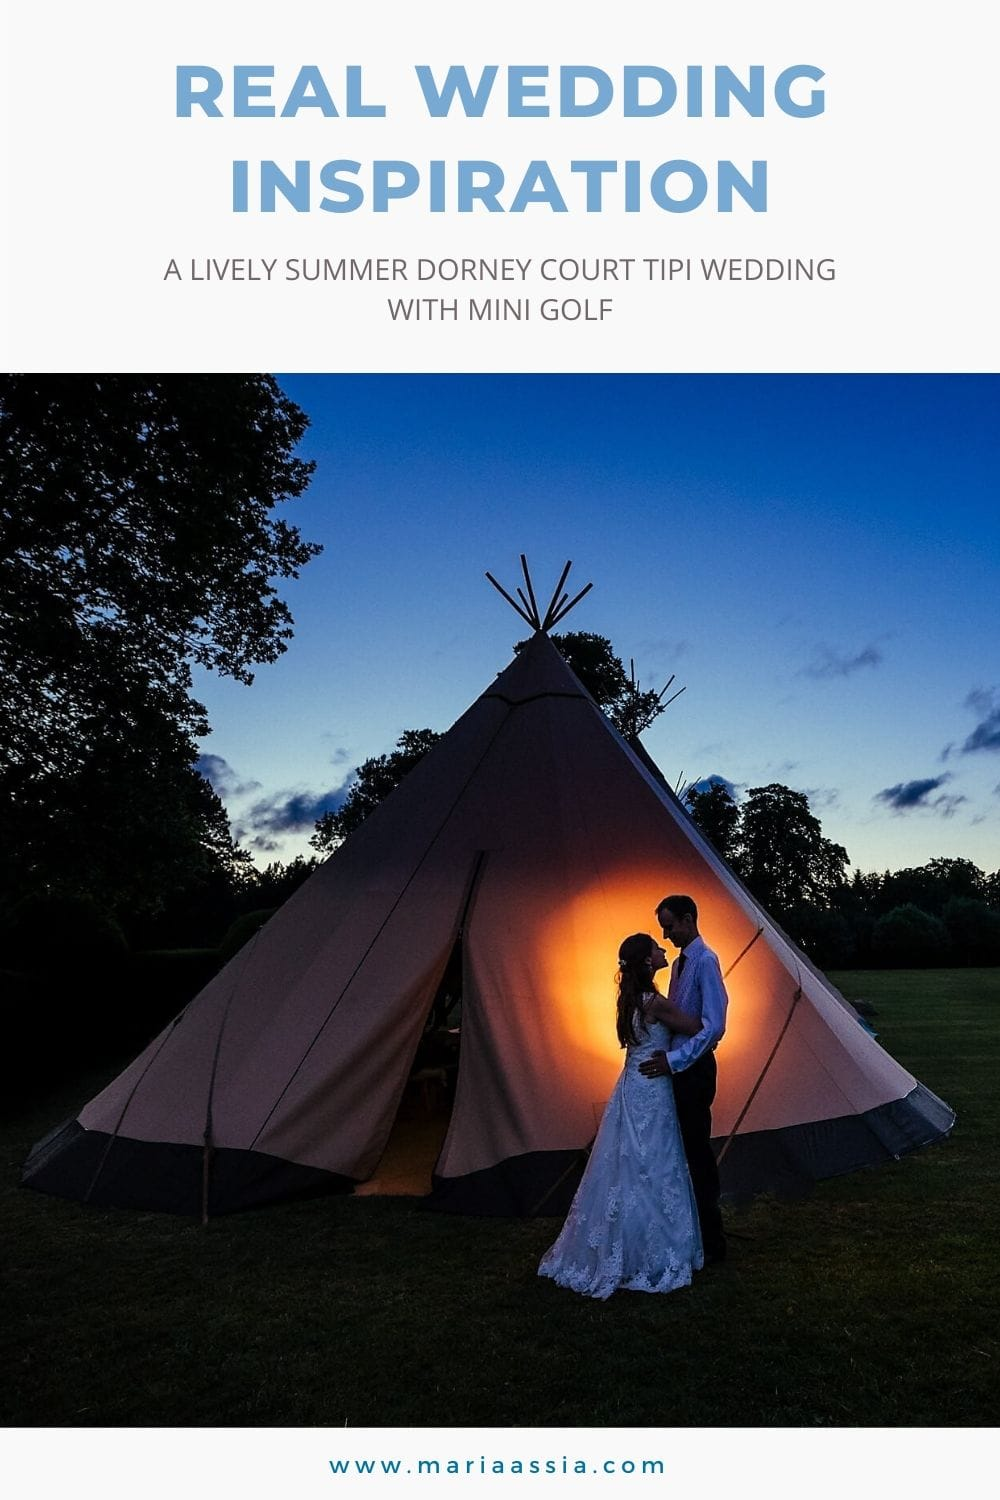 Bride and groom hug in front of their wedding tipi at sunset at Dorney Court